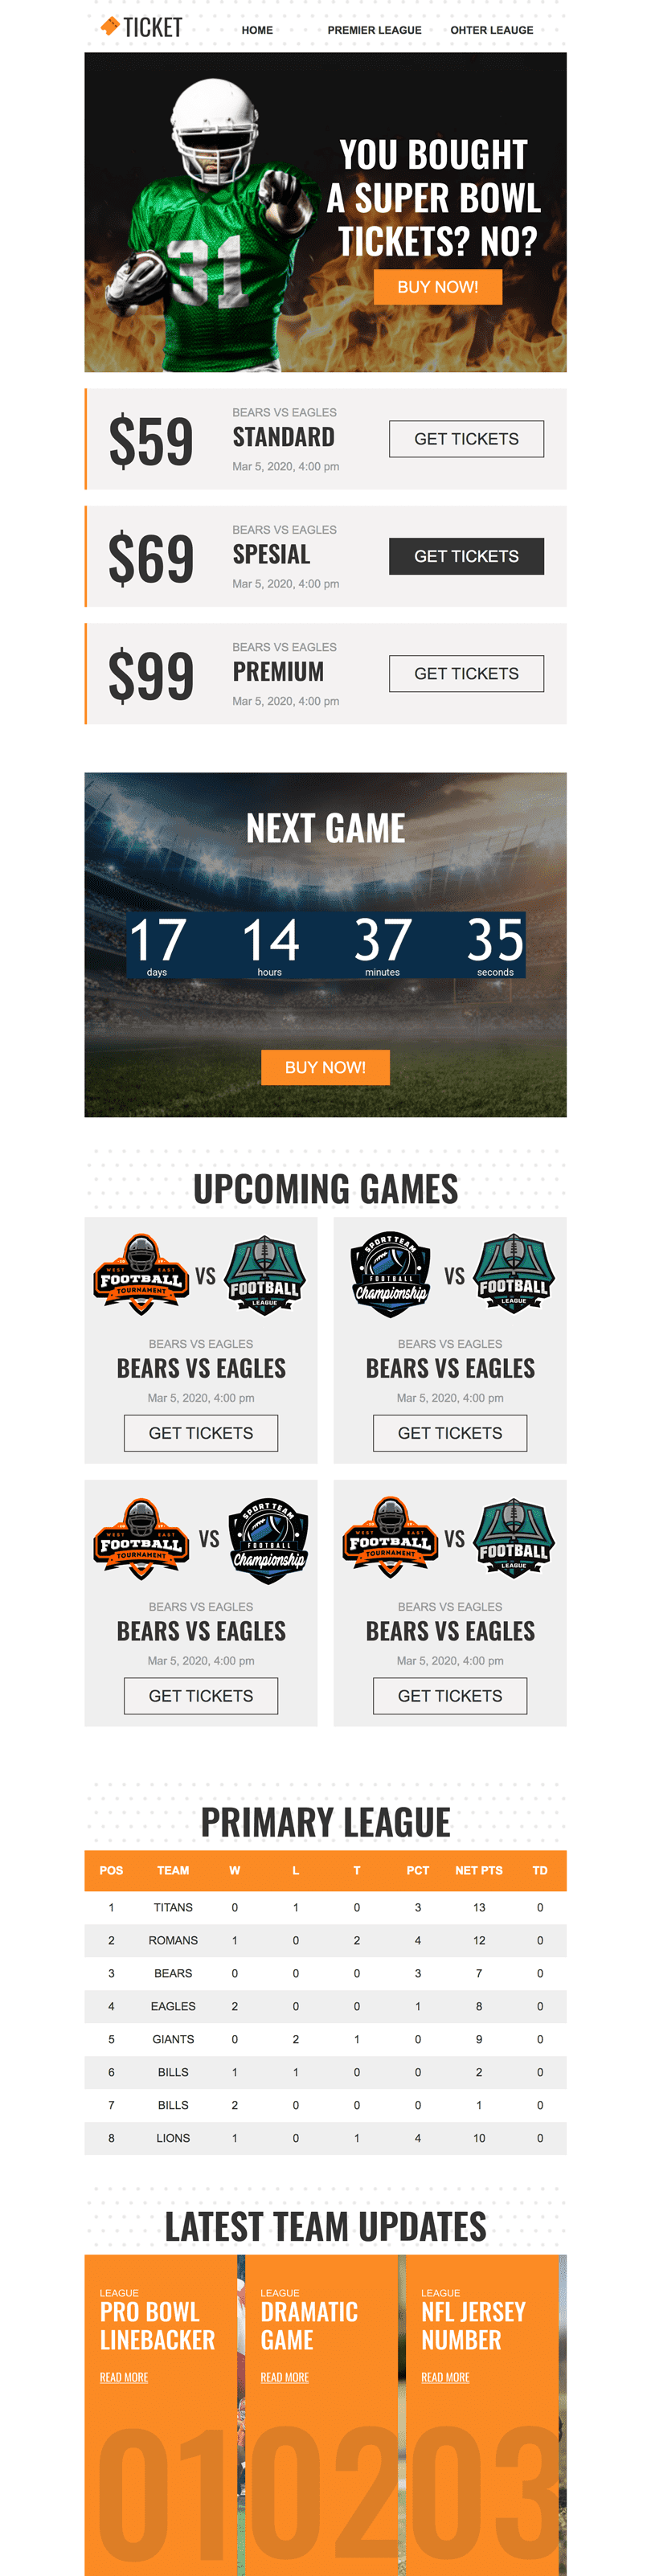 Super Bowl Email Template «Tickets» for Sports industry desktop view